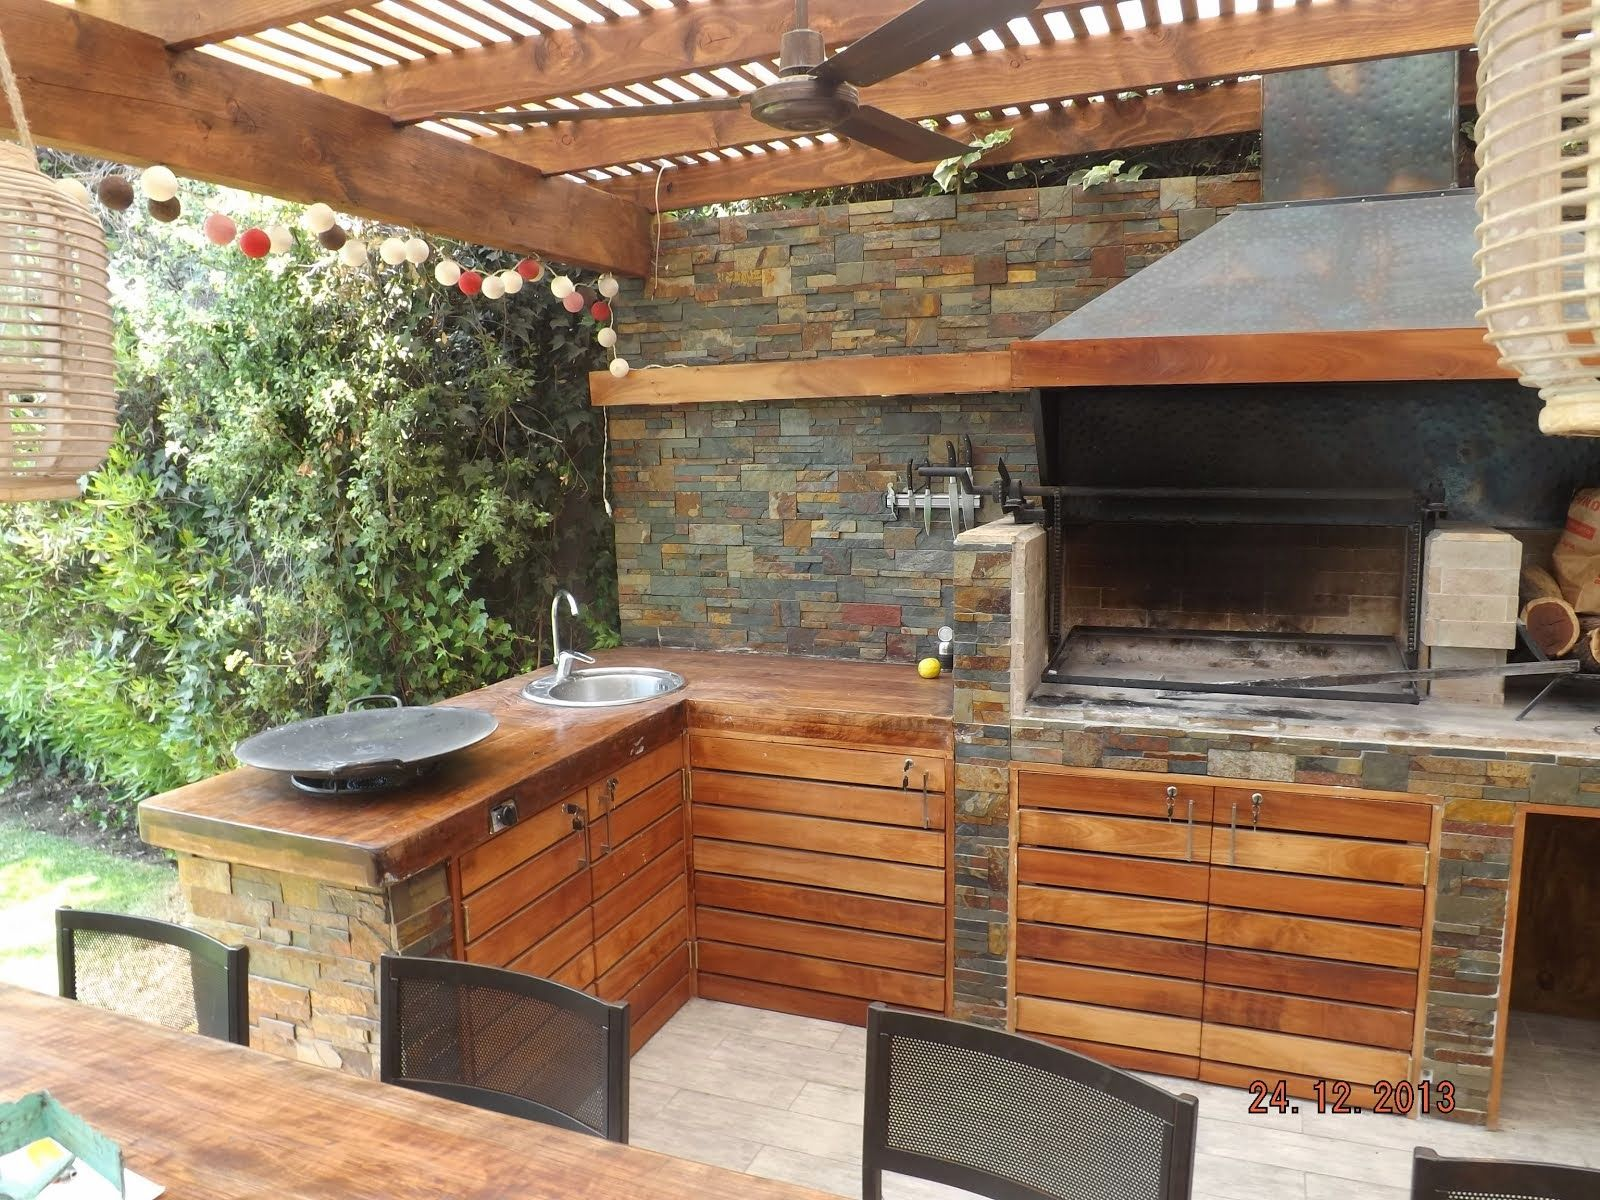 Quincho incredible barbecue area client home ideas - Barbacoas rusticas de obra ...